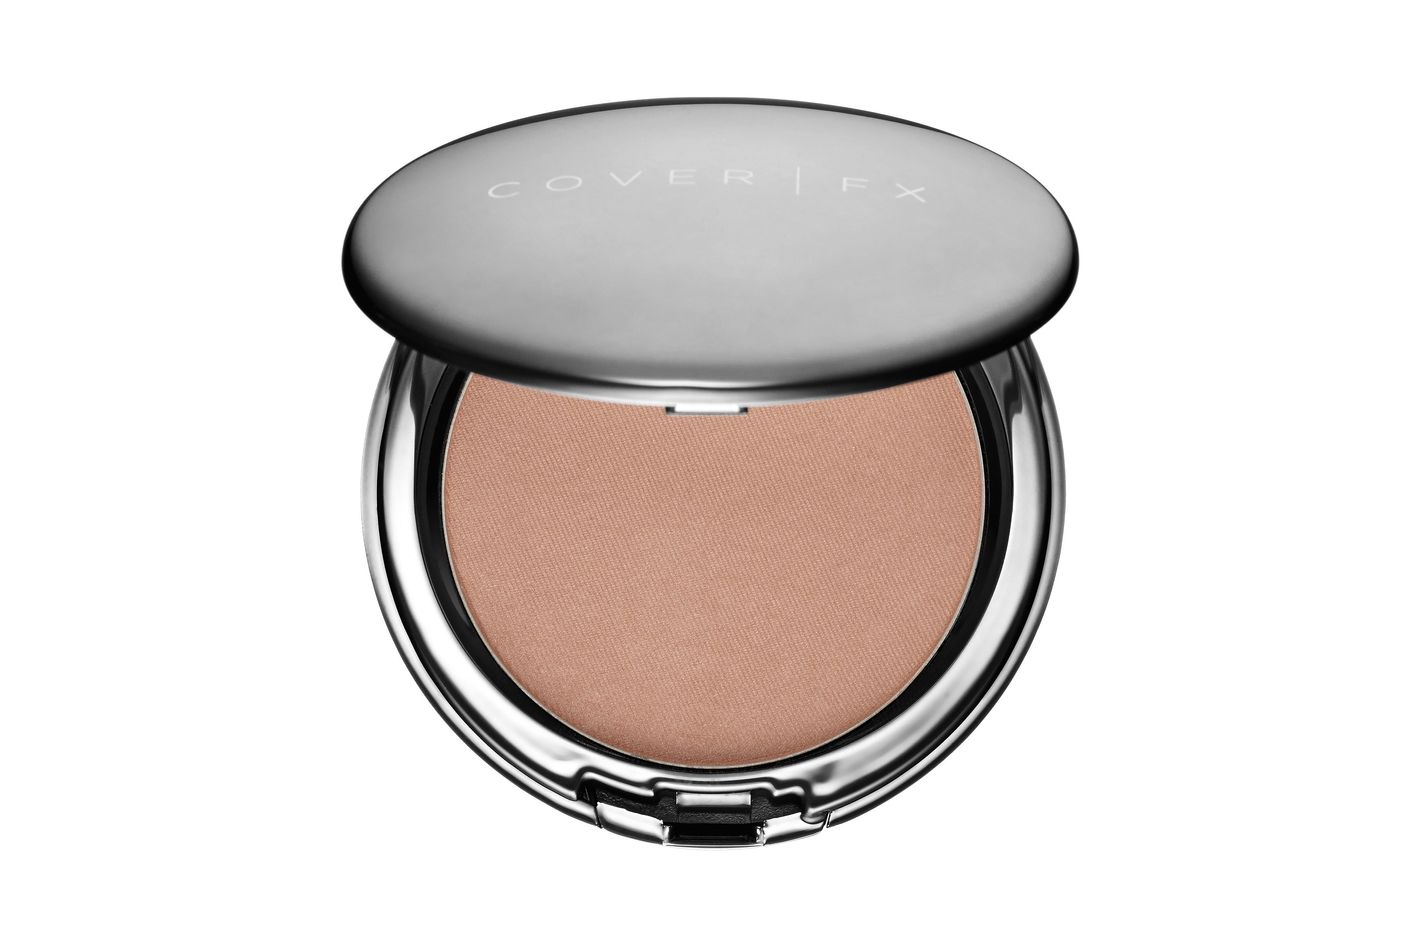 COVER FX Perfect Light Mini Highlighter